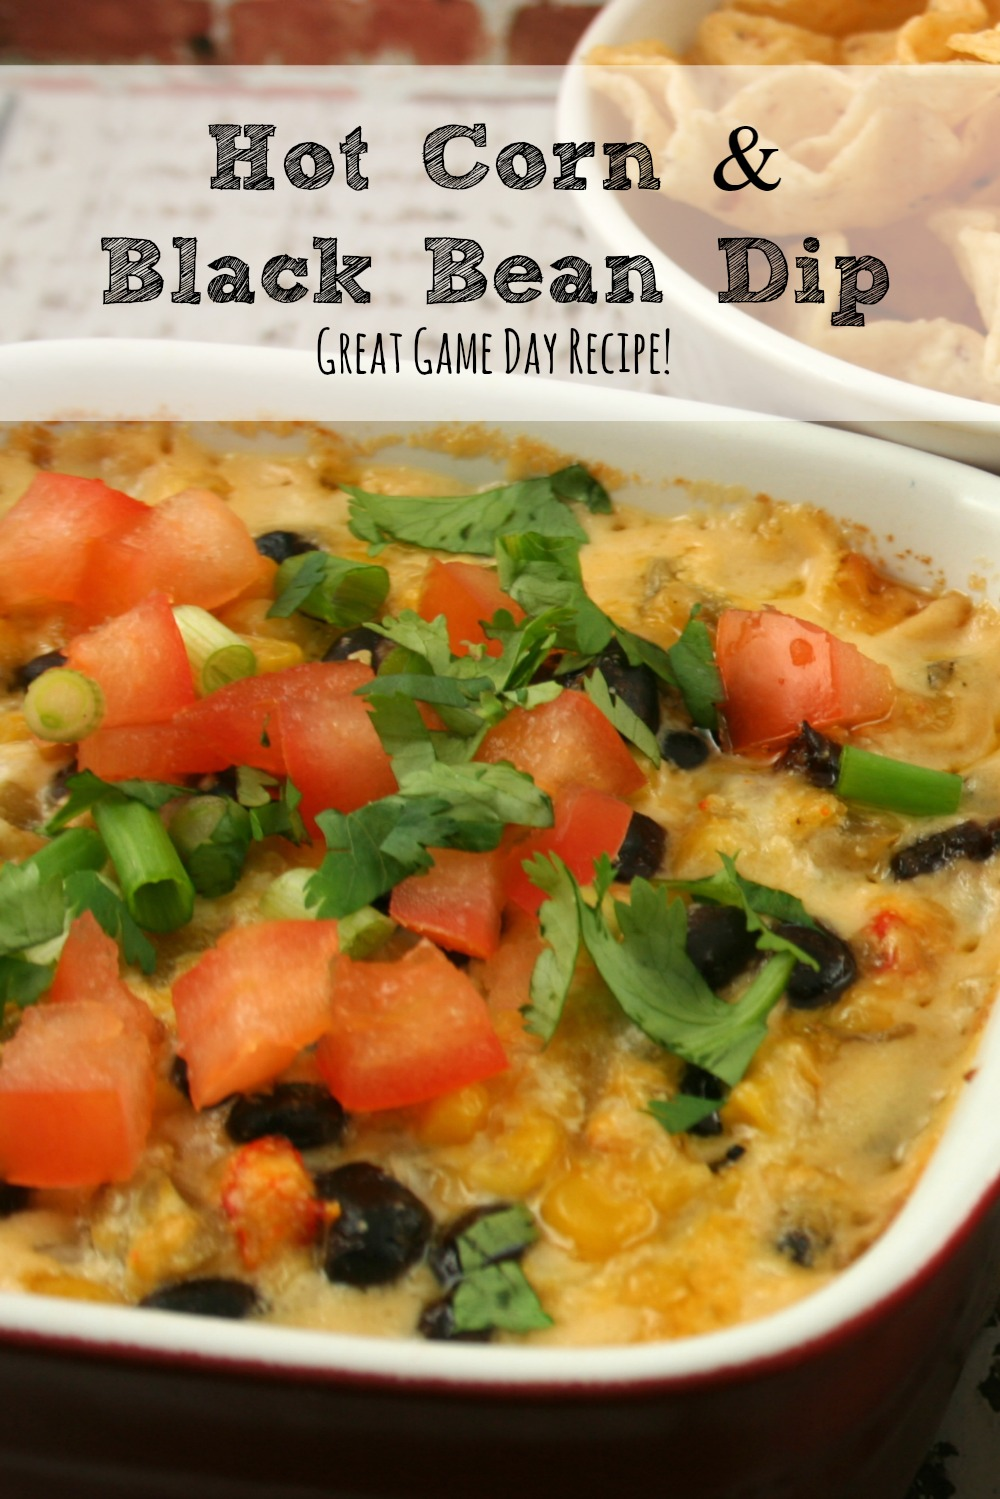 Hot Corn and Black Bean Dip Recipe - Great Game Day Recipe